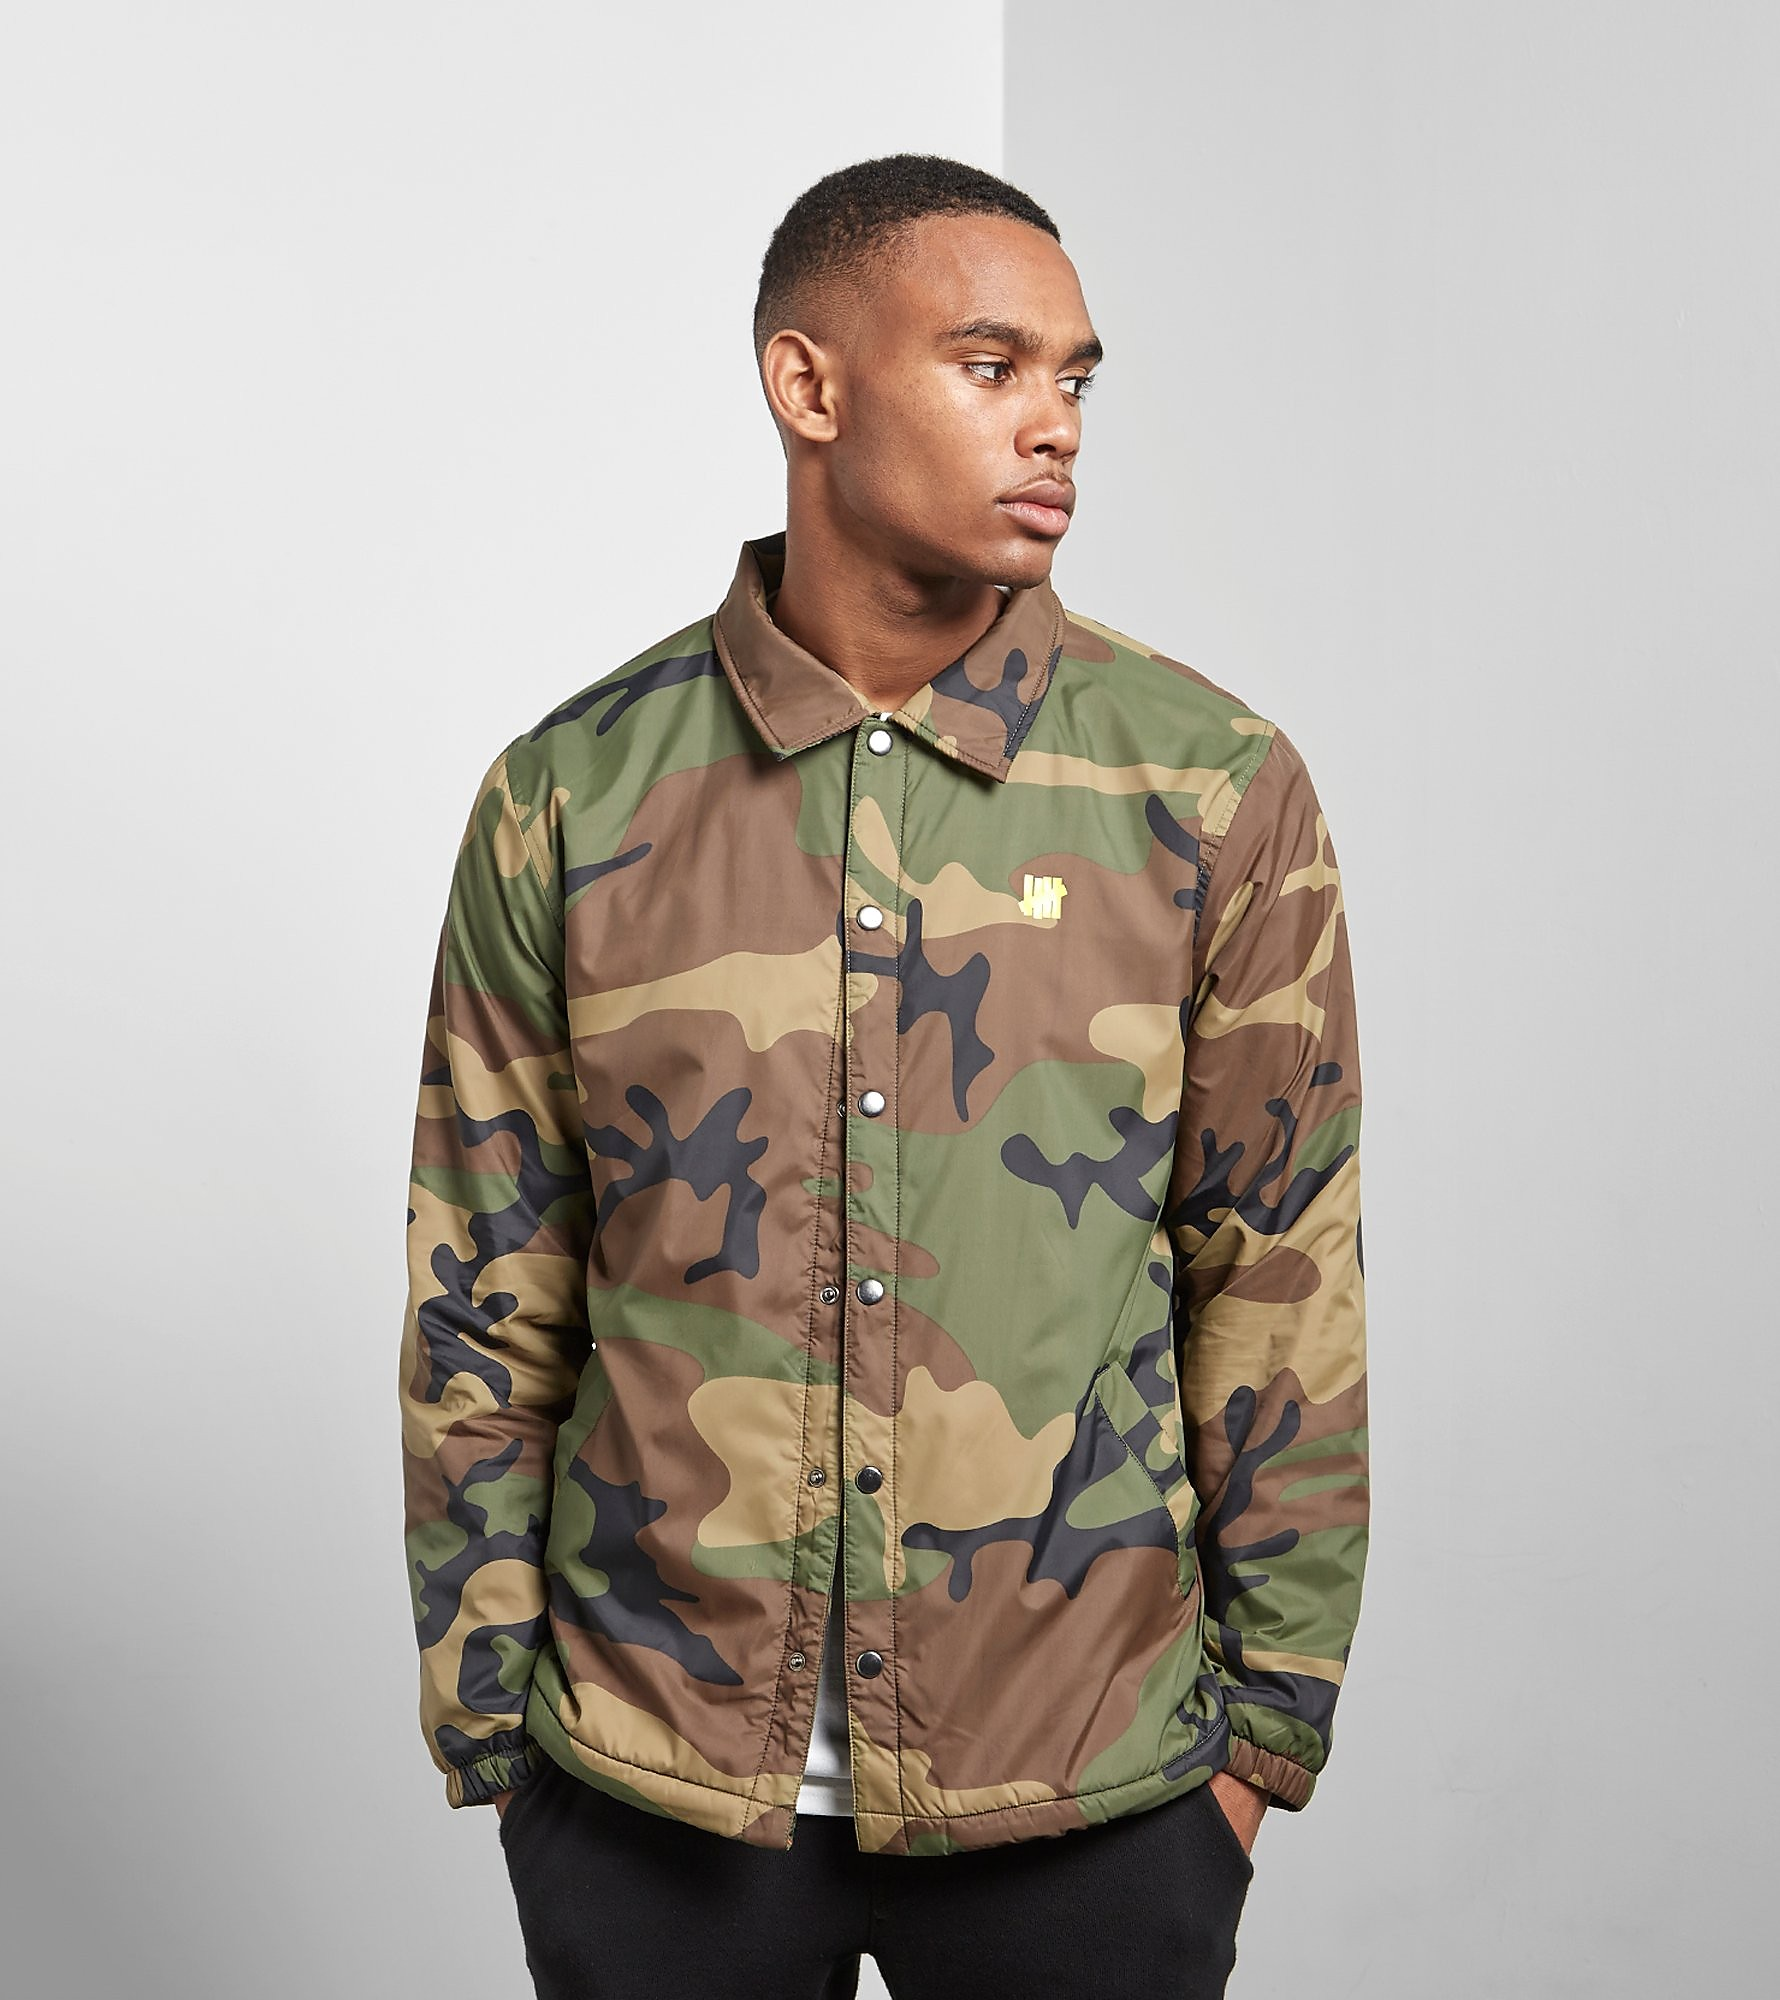 Undefeated 5 Strike Coach Jacket